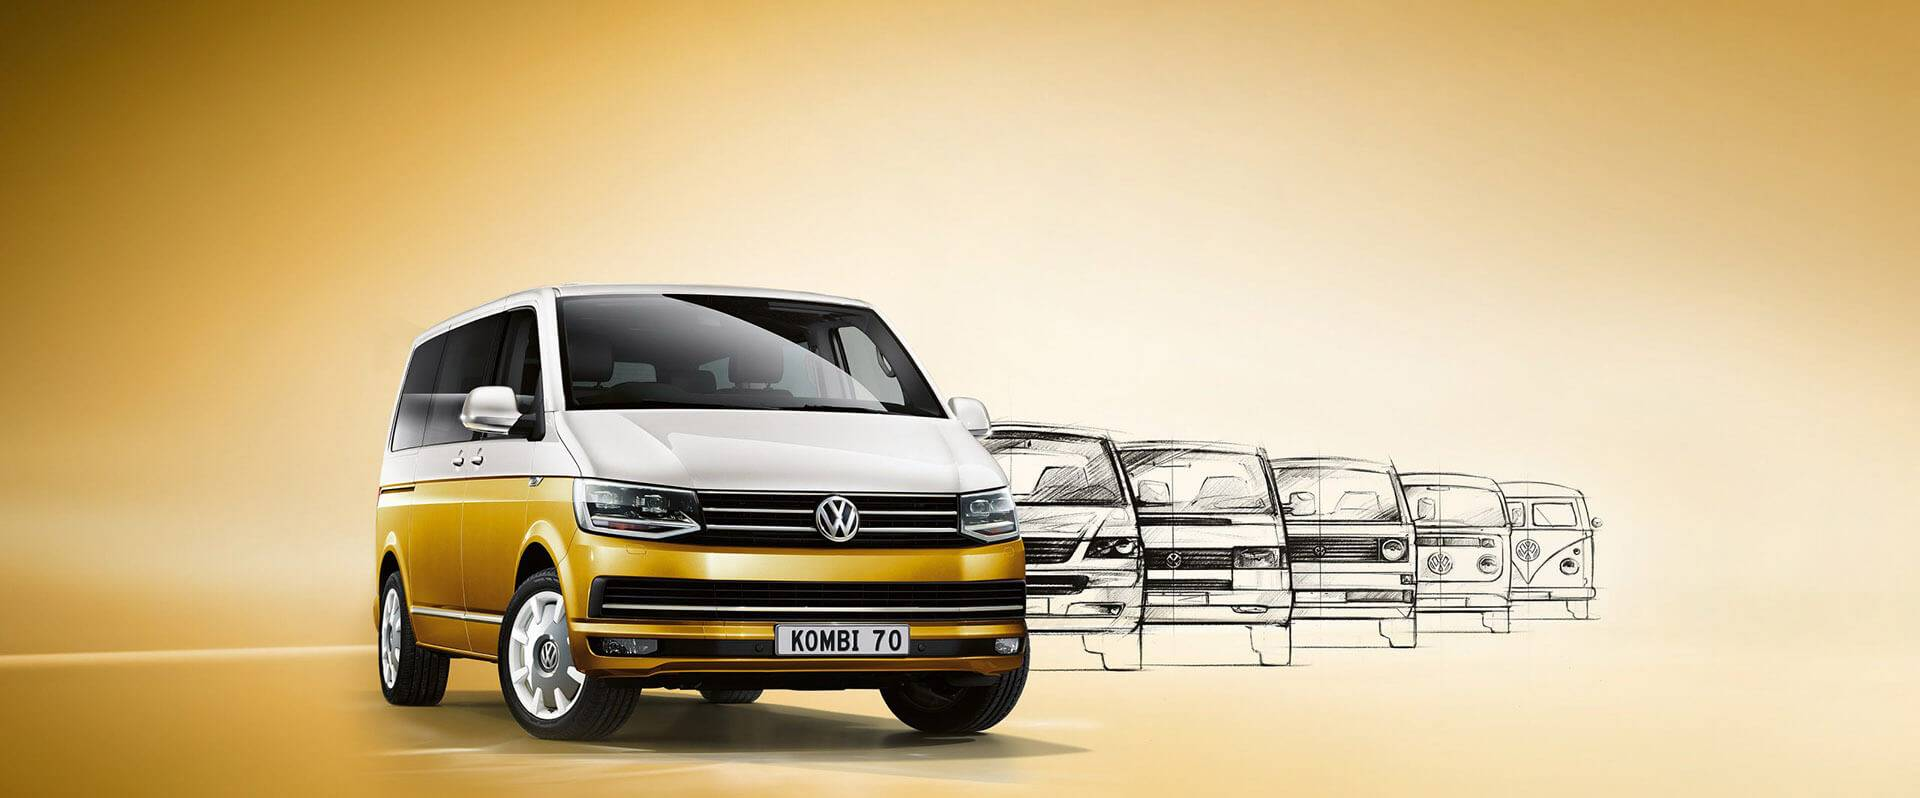 South Yarra Volkswagen Volkswagen Dealer Melbourne